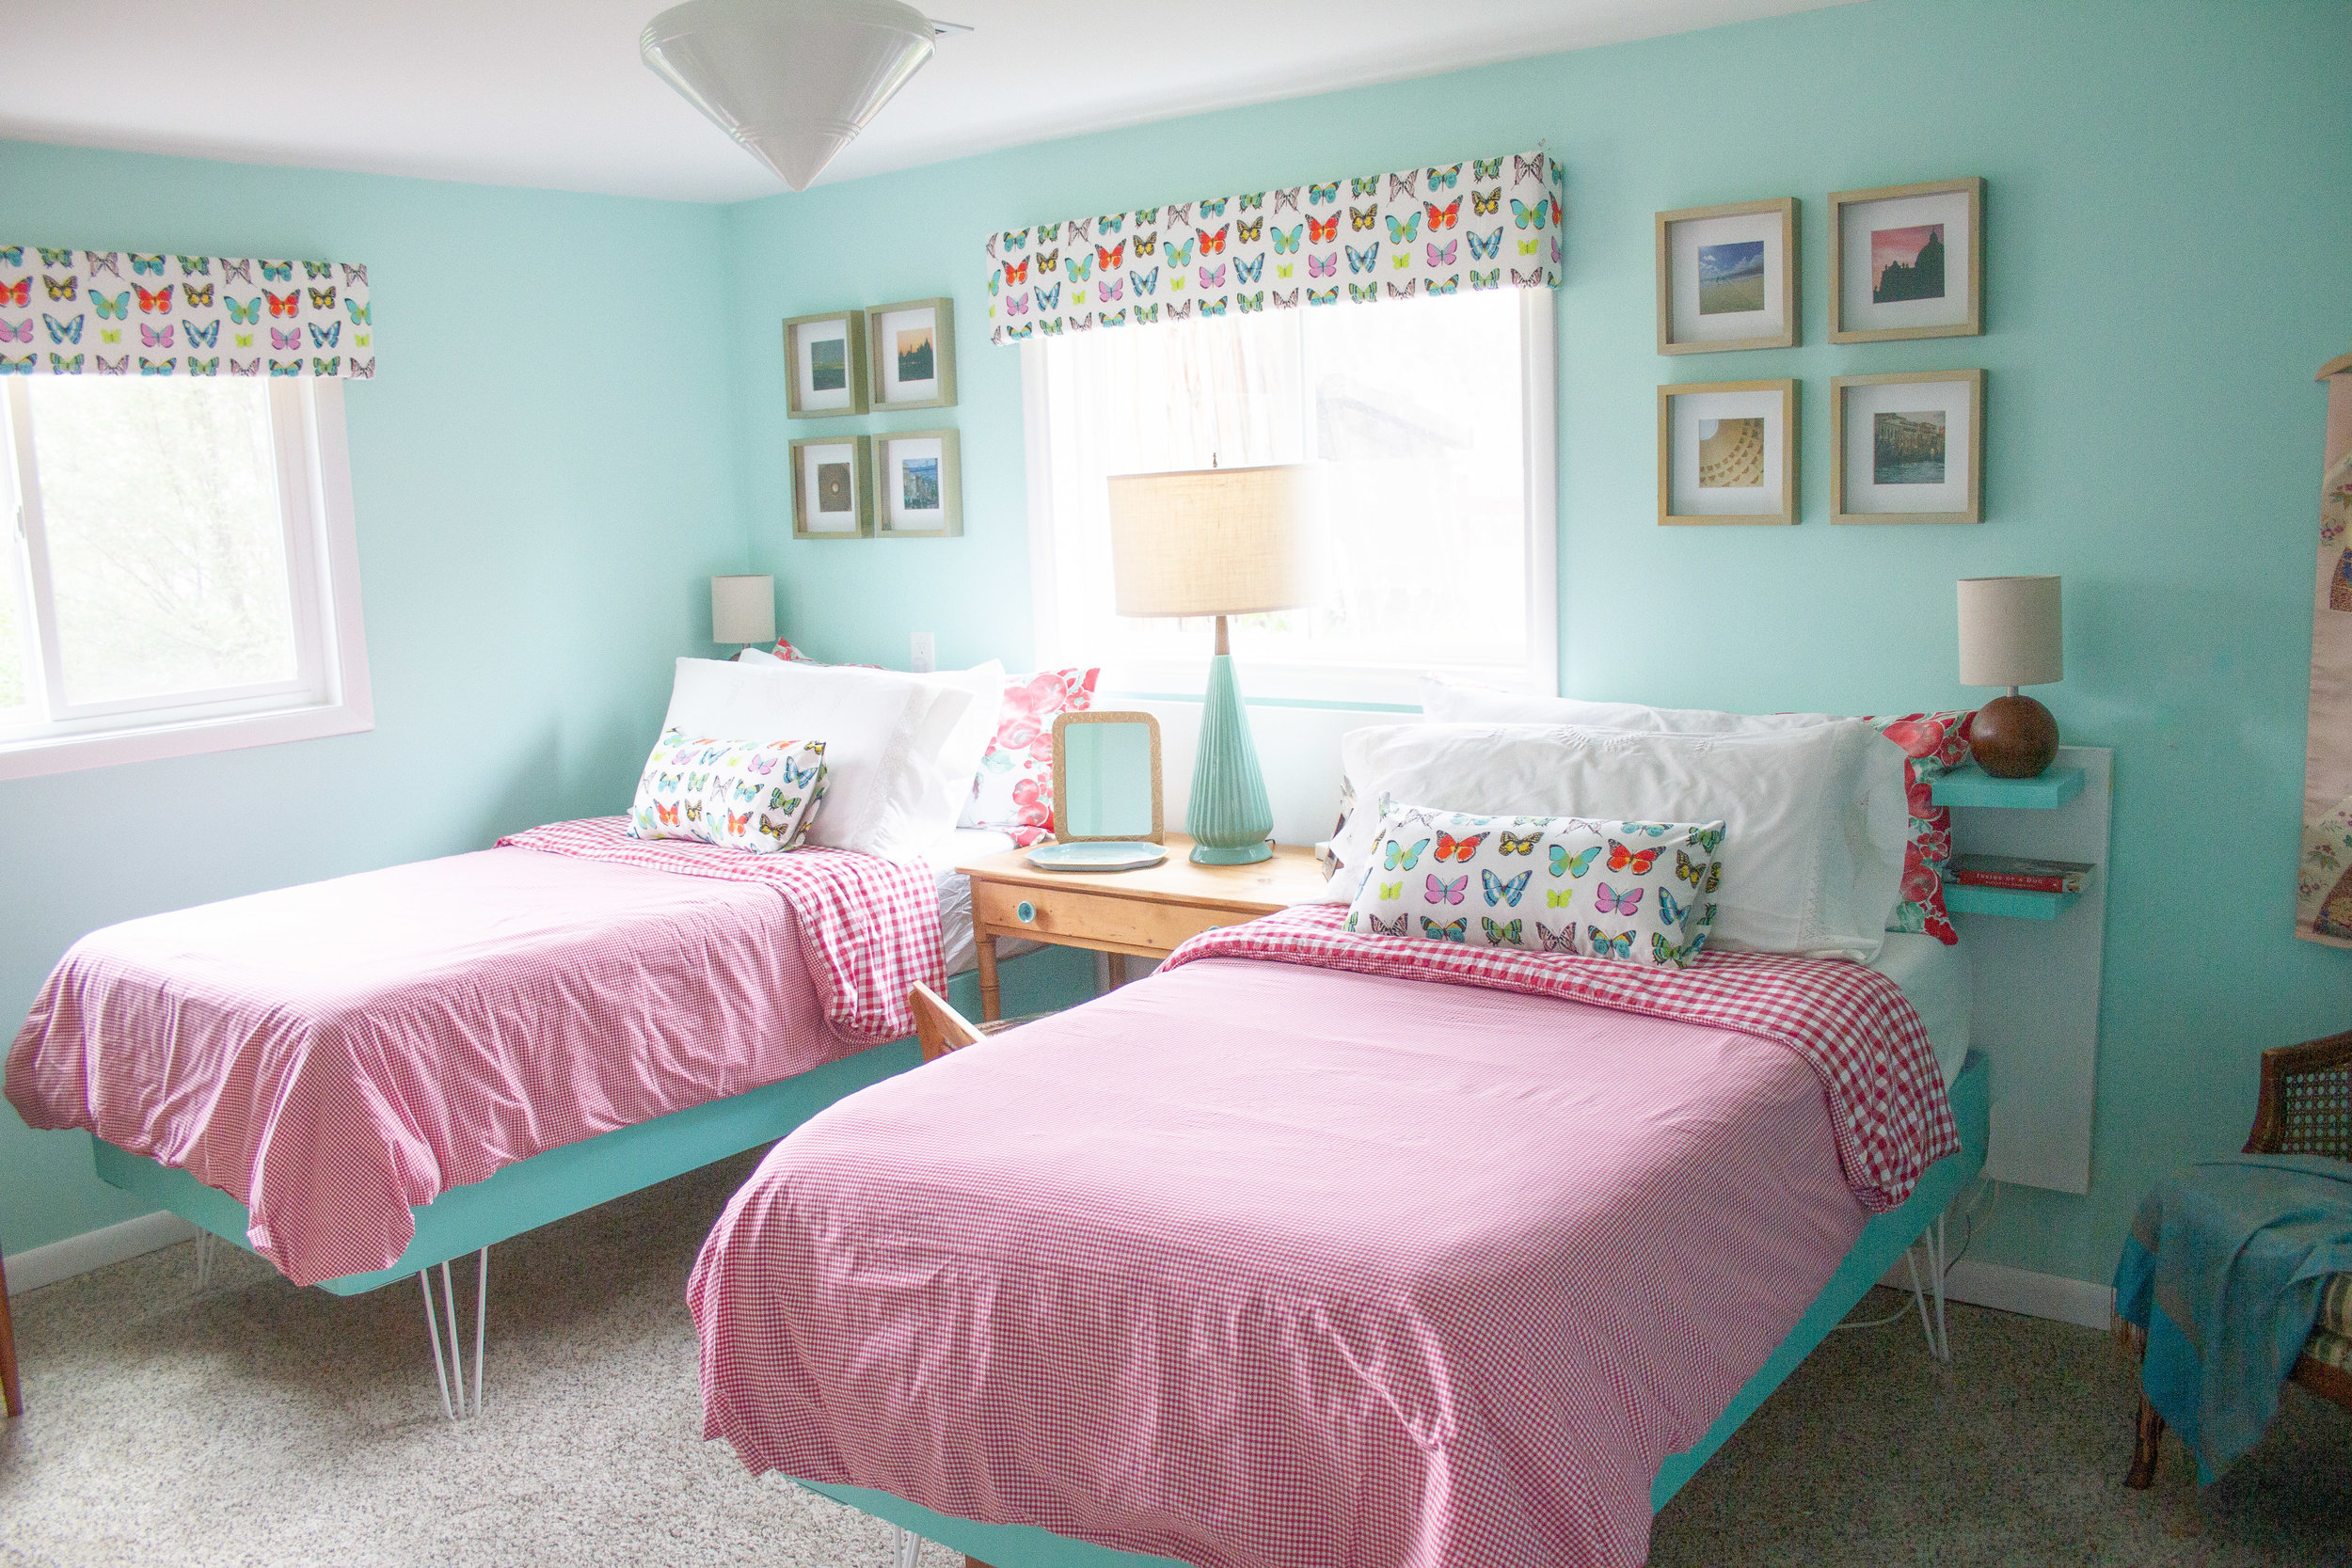 Two twin beds make a guest room more flexible for groups of guests.